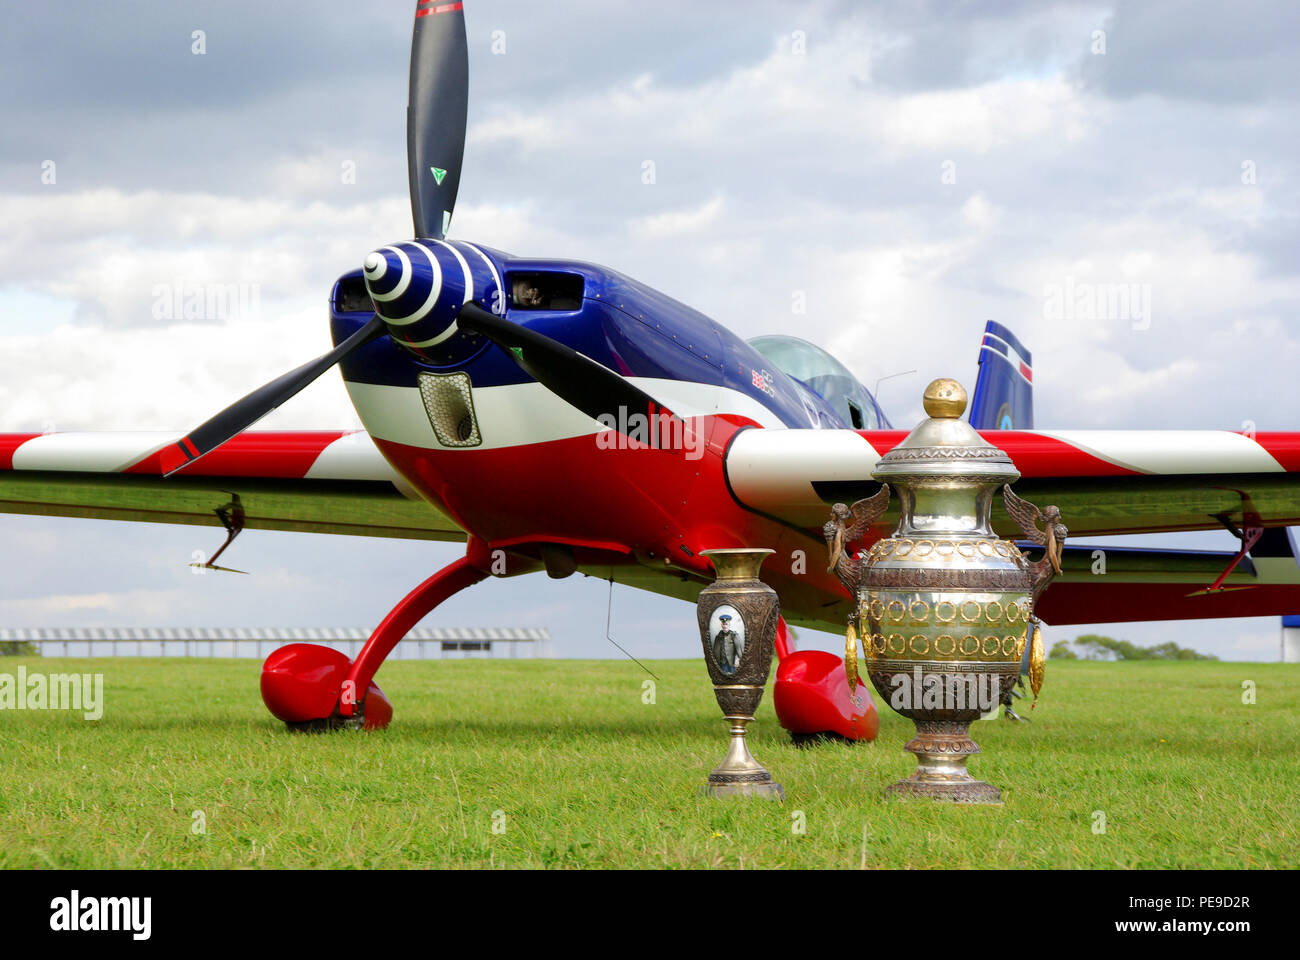 French team Extra 330 aerobatic plane at the World Aerobatics Championships WAC at Silverstone, UK. Winner aircraft with trophy, trophies. Aresti Cup - Stock Image